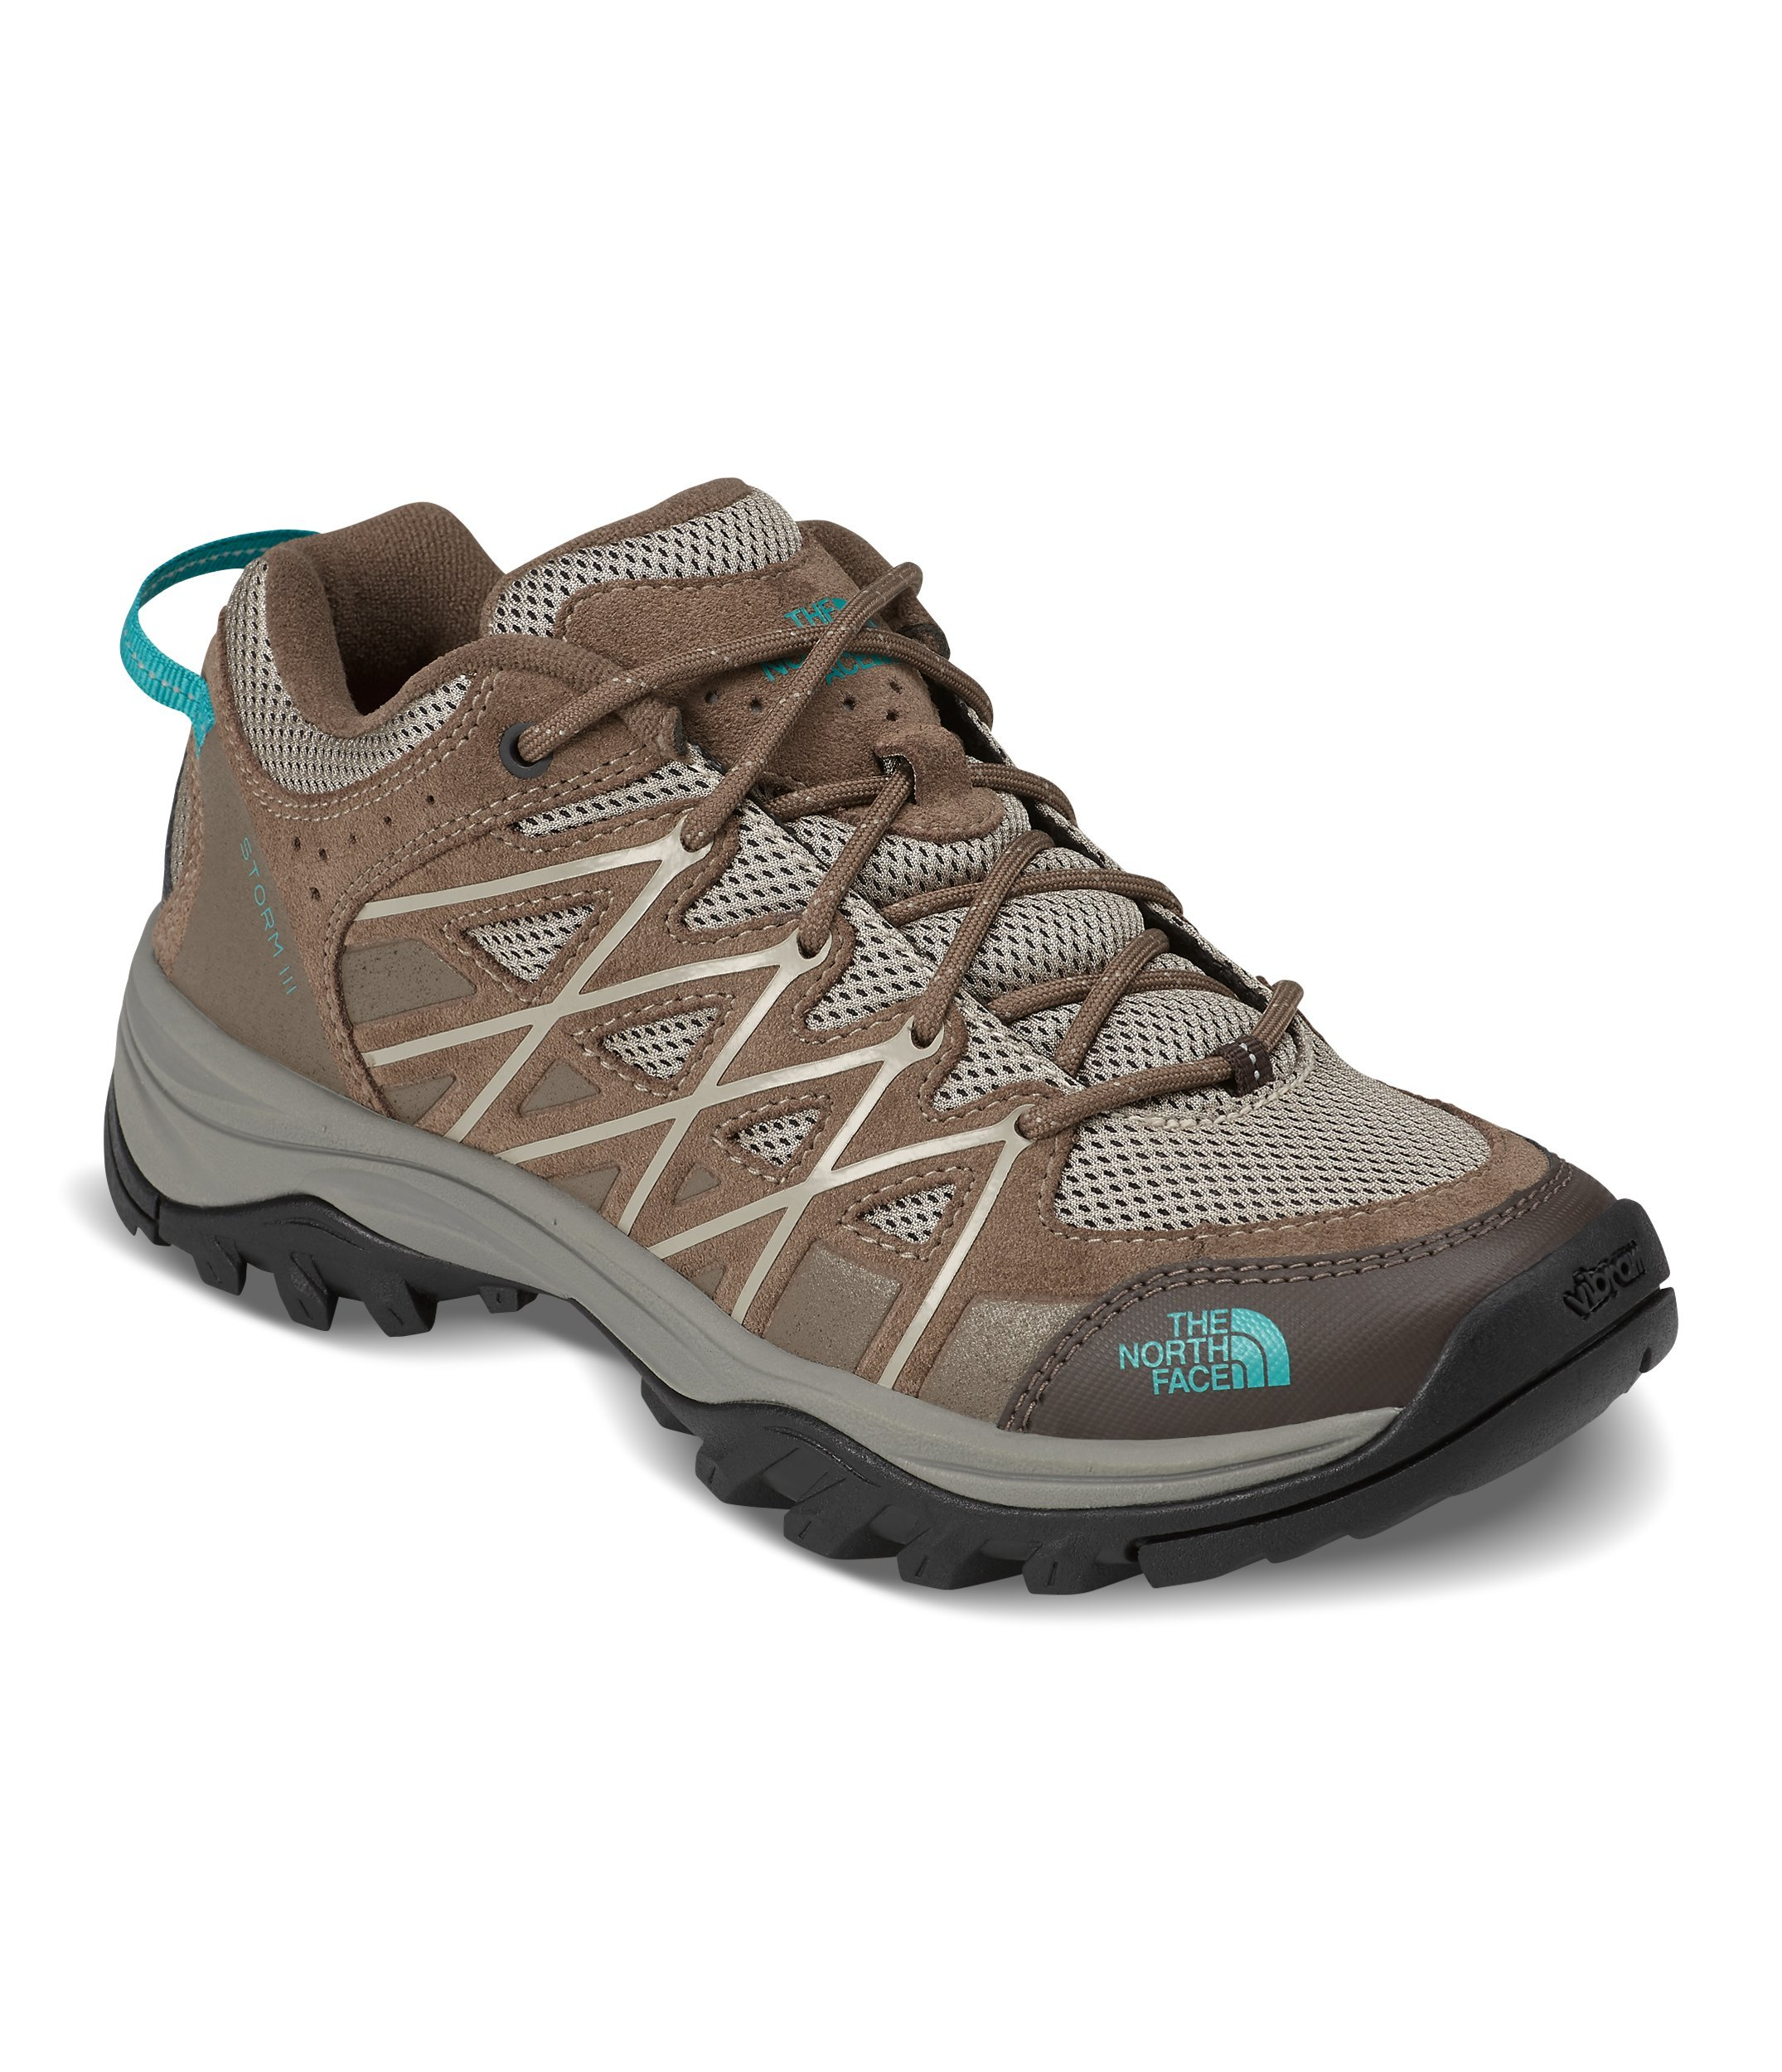 The North Face Womens Storm III - Cub Brown & Crockery Beige - 9.5 by The North Face